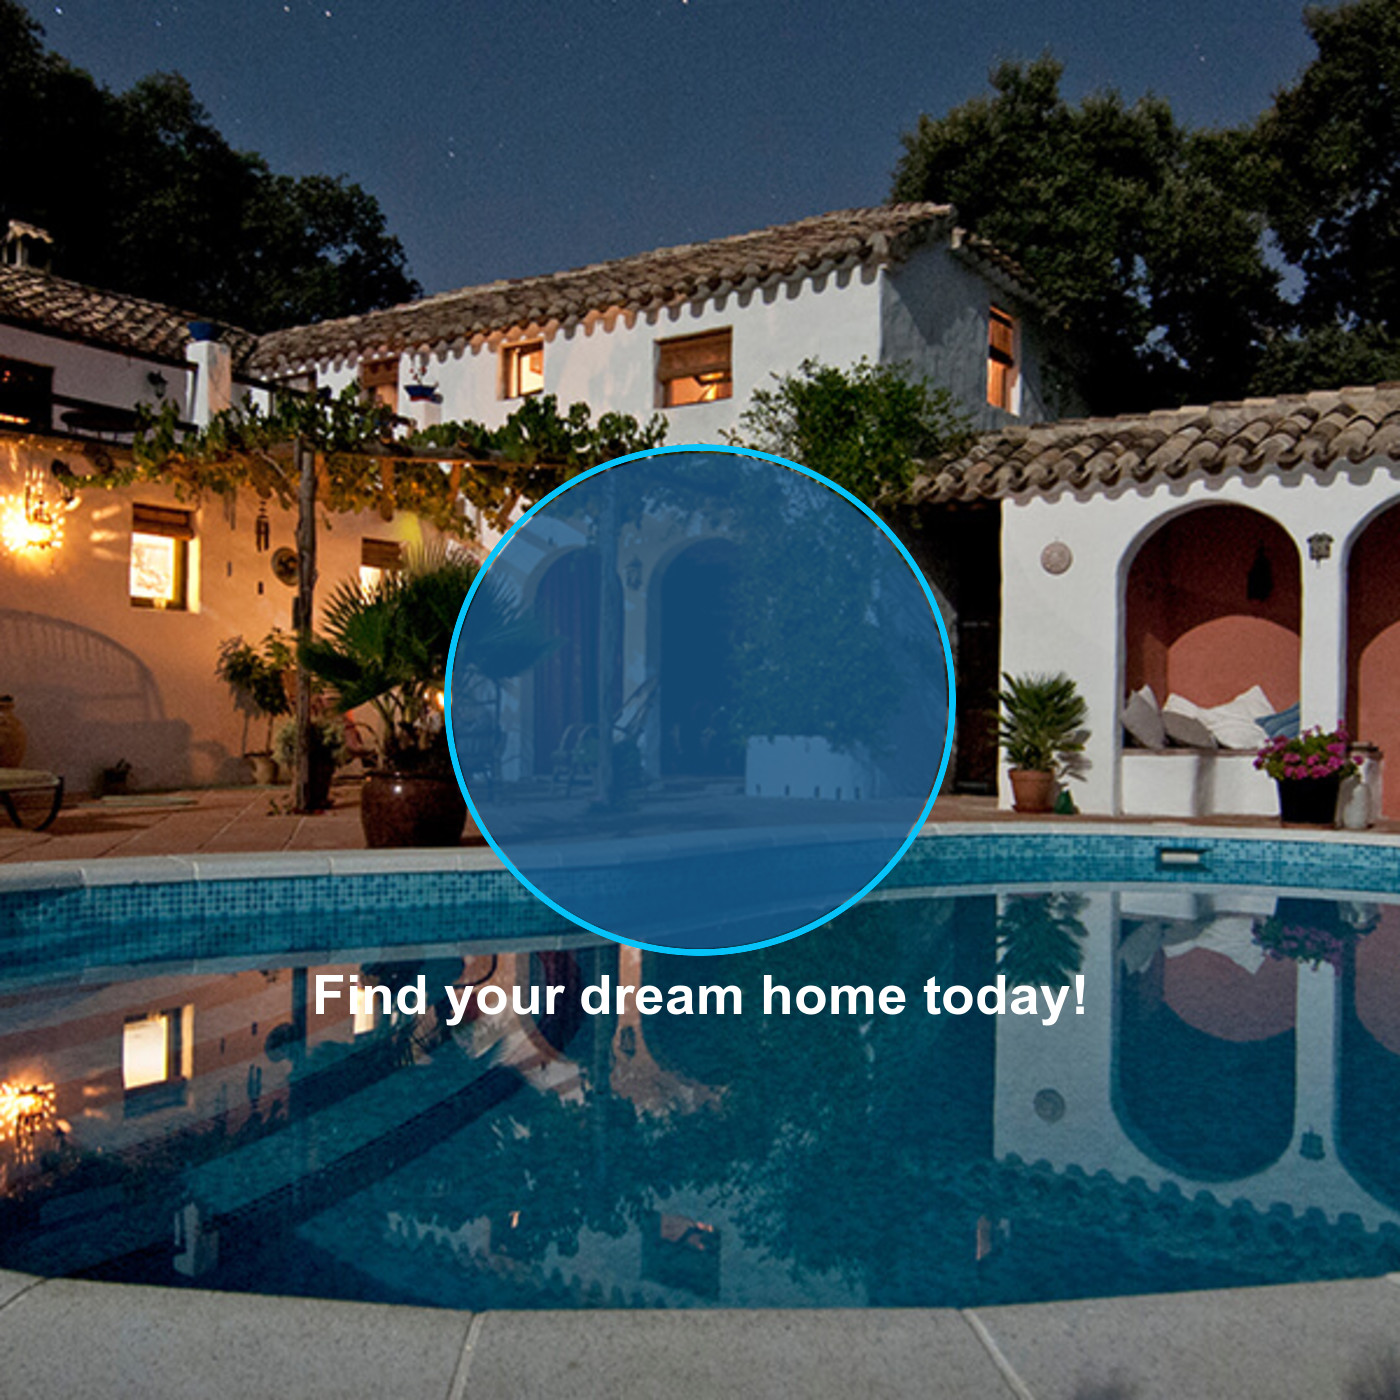 Bay Area Real Estate And Rentals: Tampa Bay Area Real Estate